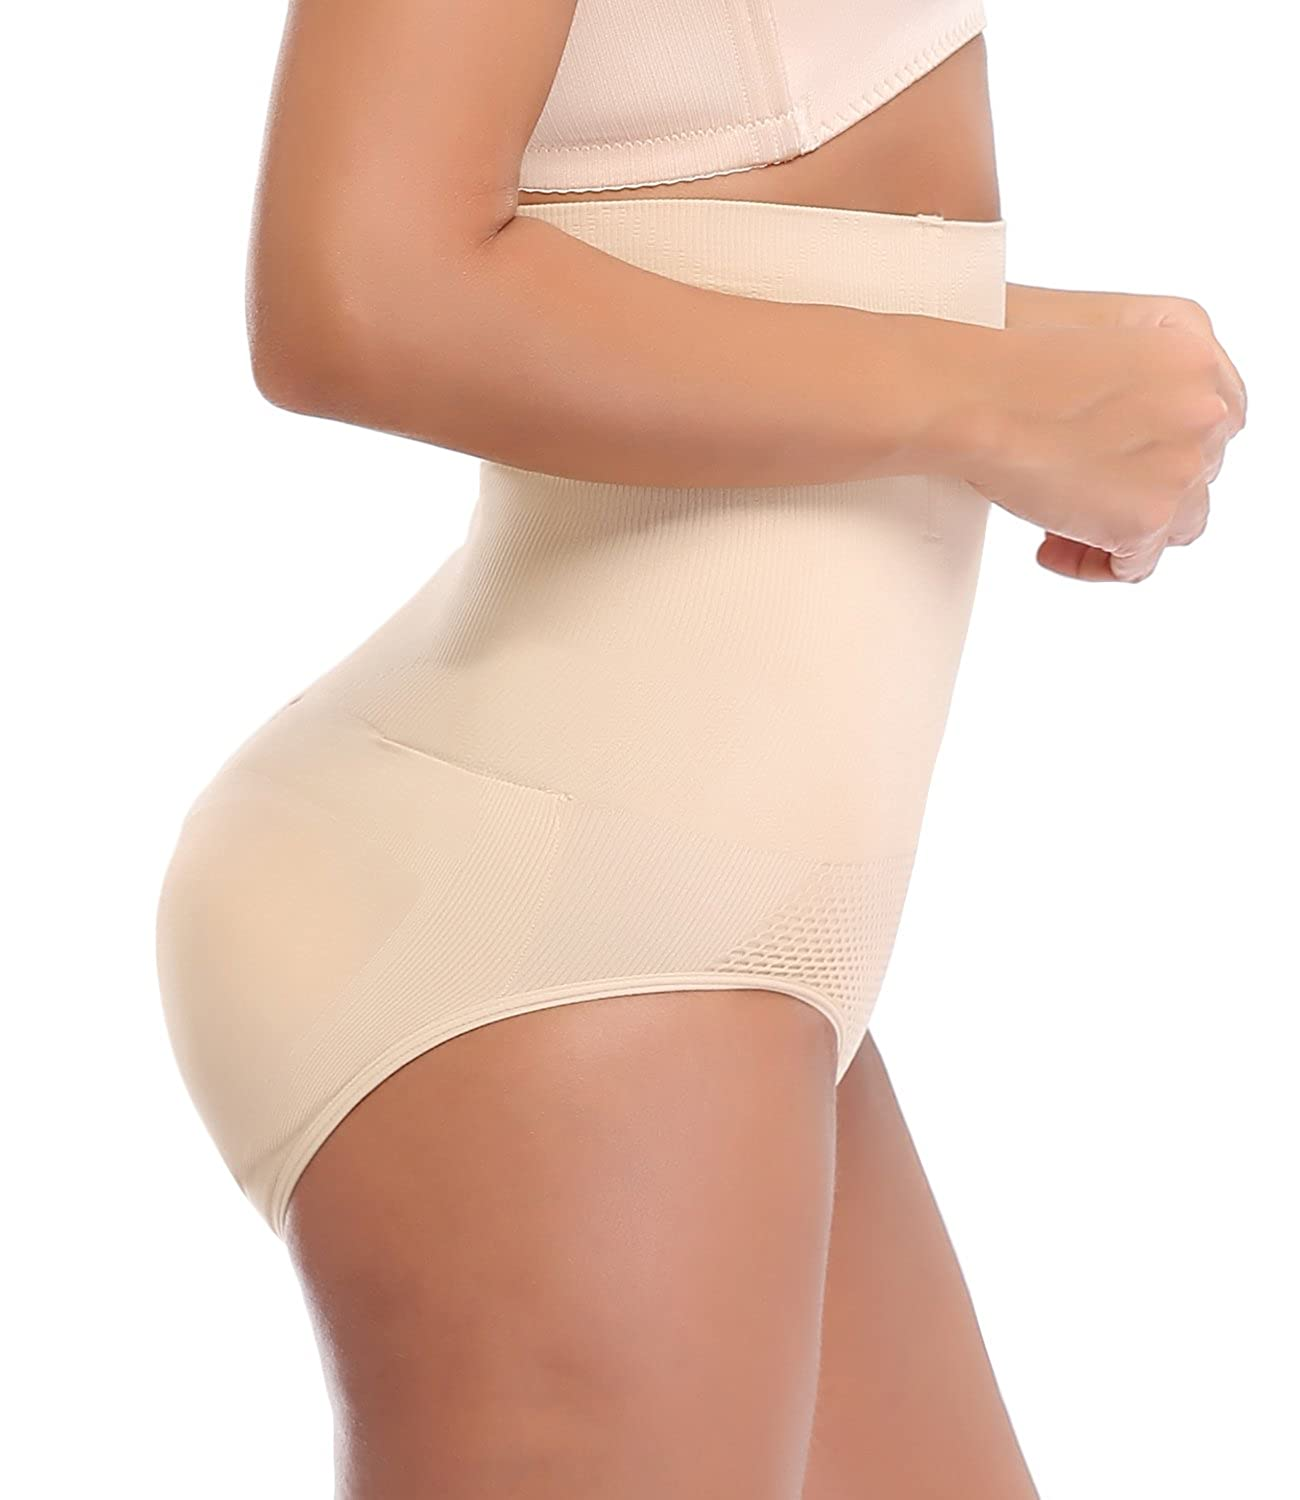 NINGMI Women Butt Lifter Padded Hip Enhancer Hi-Waist Control Panties Shapewear NMSF5617CA